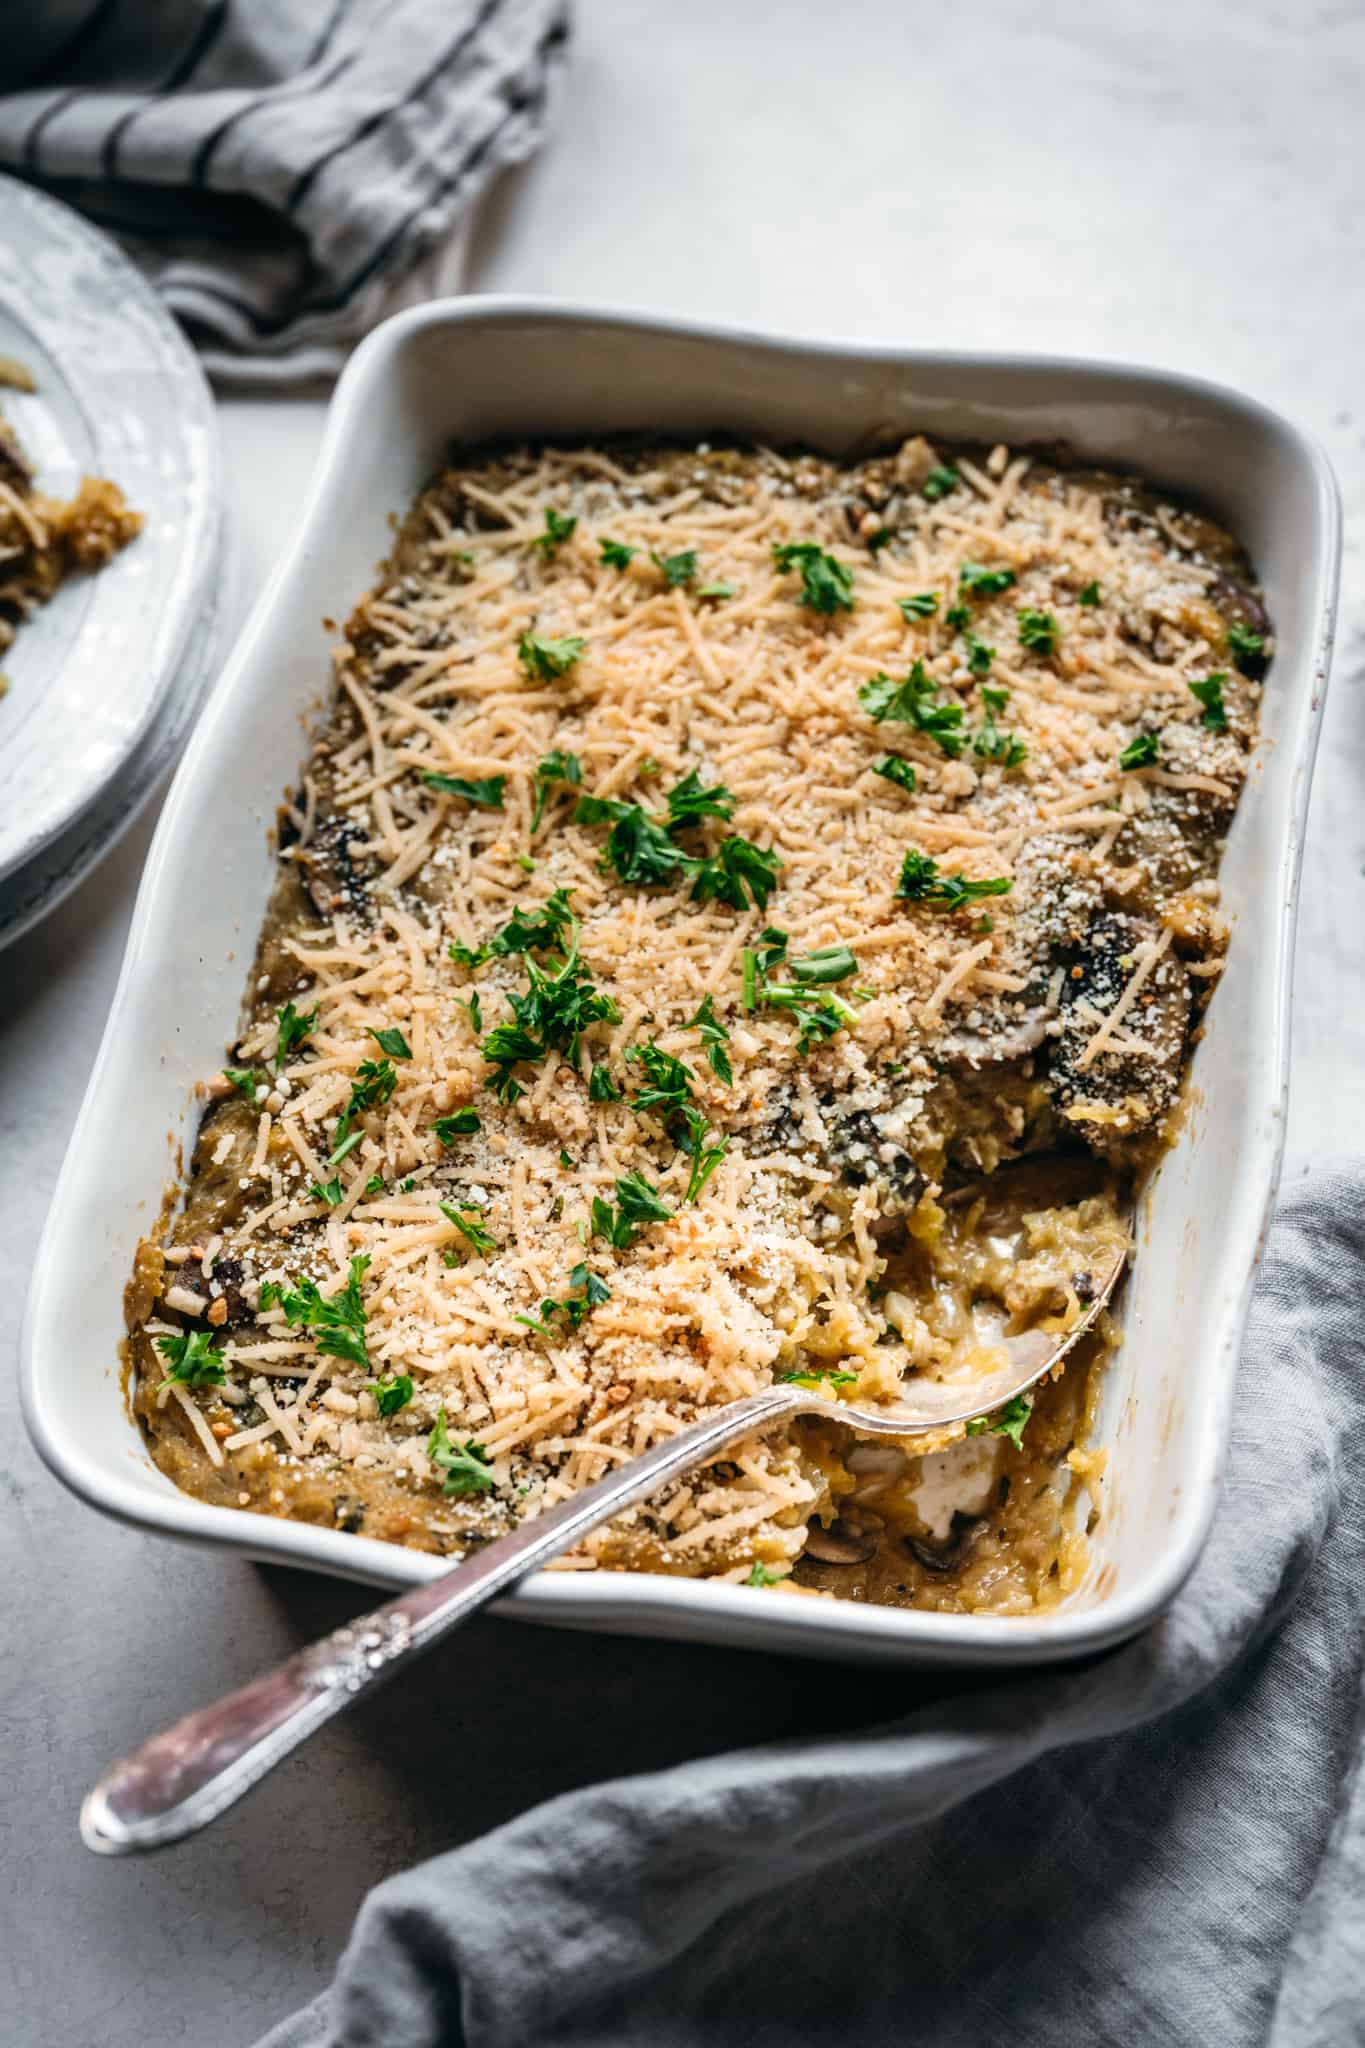 side view of vegan spaghetti squash casserole in white baking dish with spoon